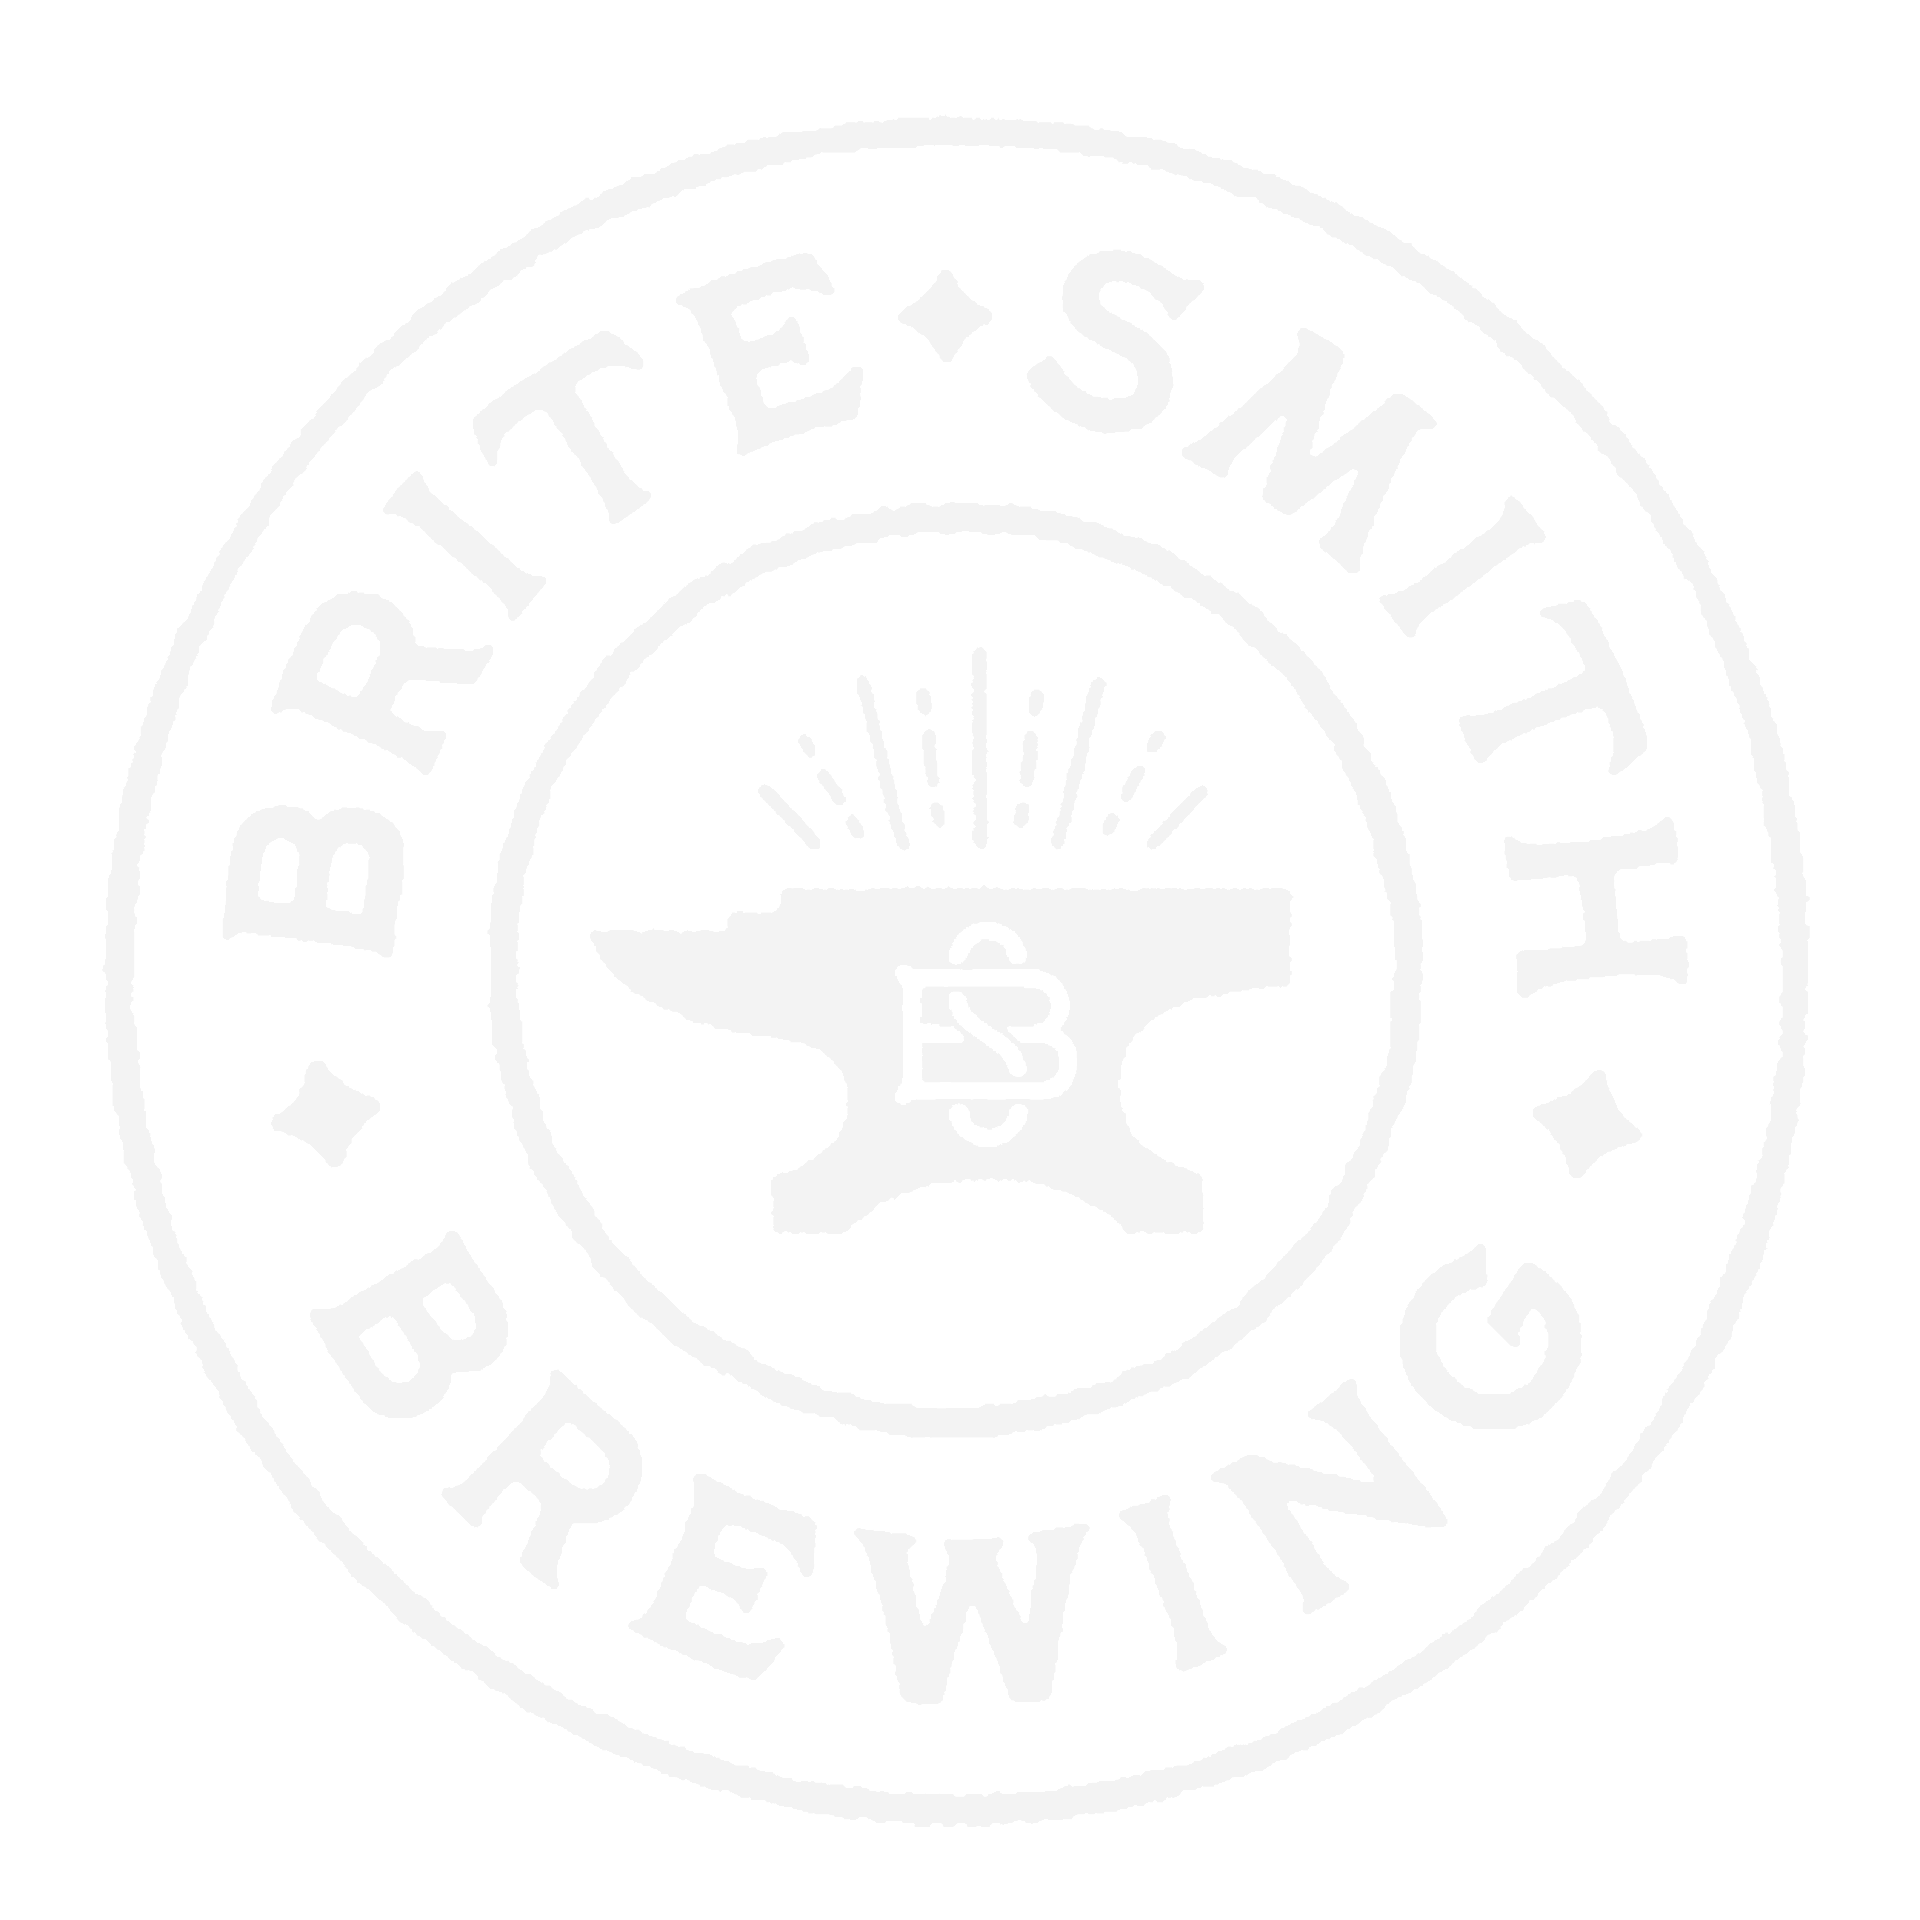 Britesmith Brewing Company